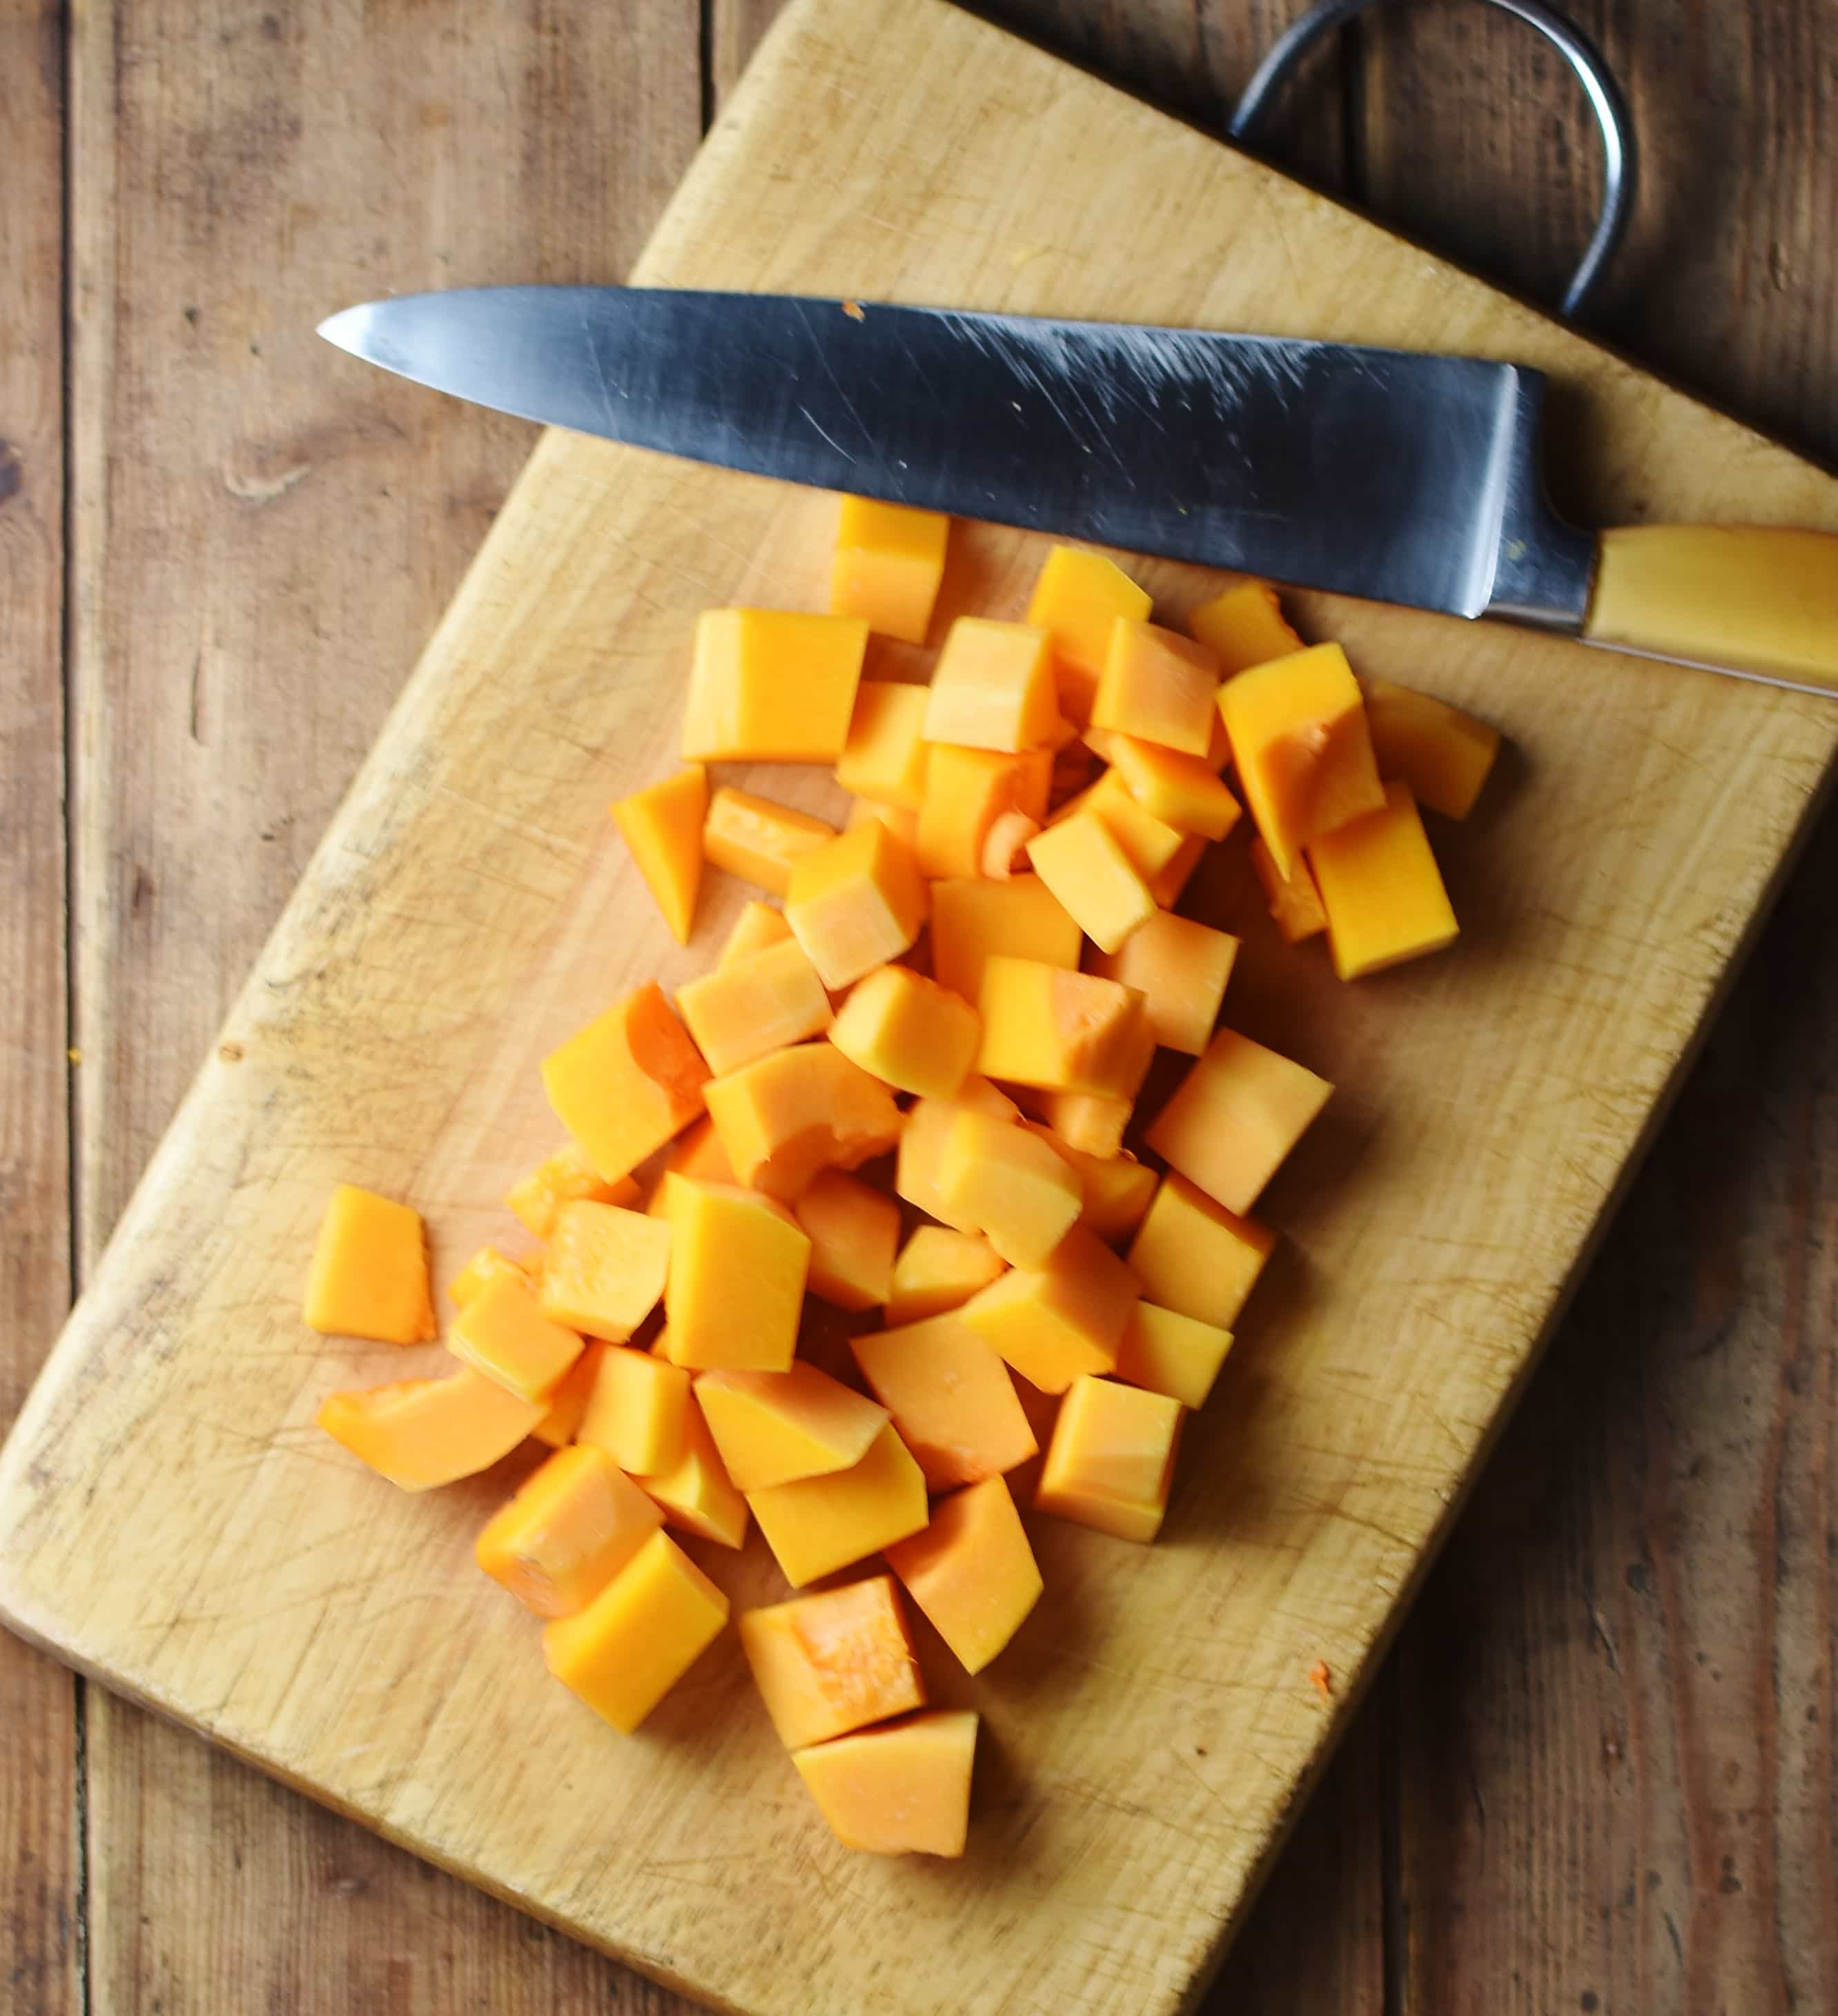 Peeled and cubed butternut squash on top of cutting board with knife.